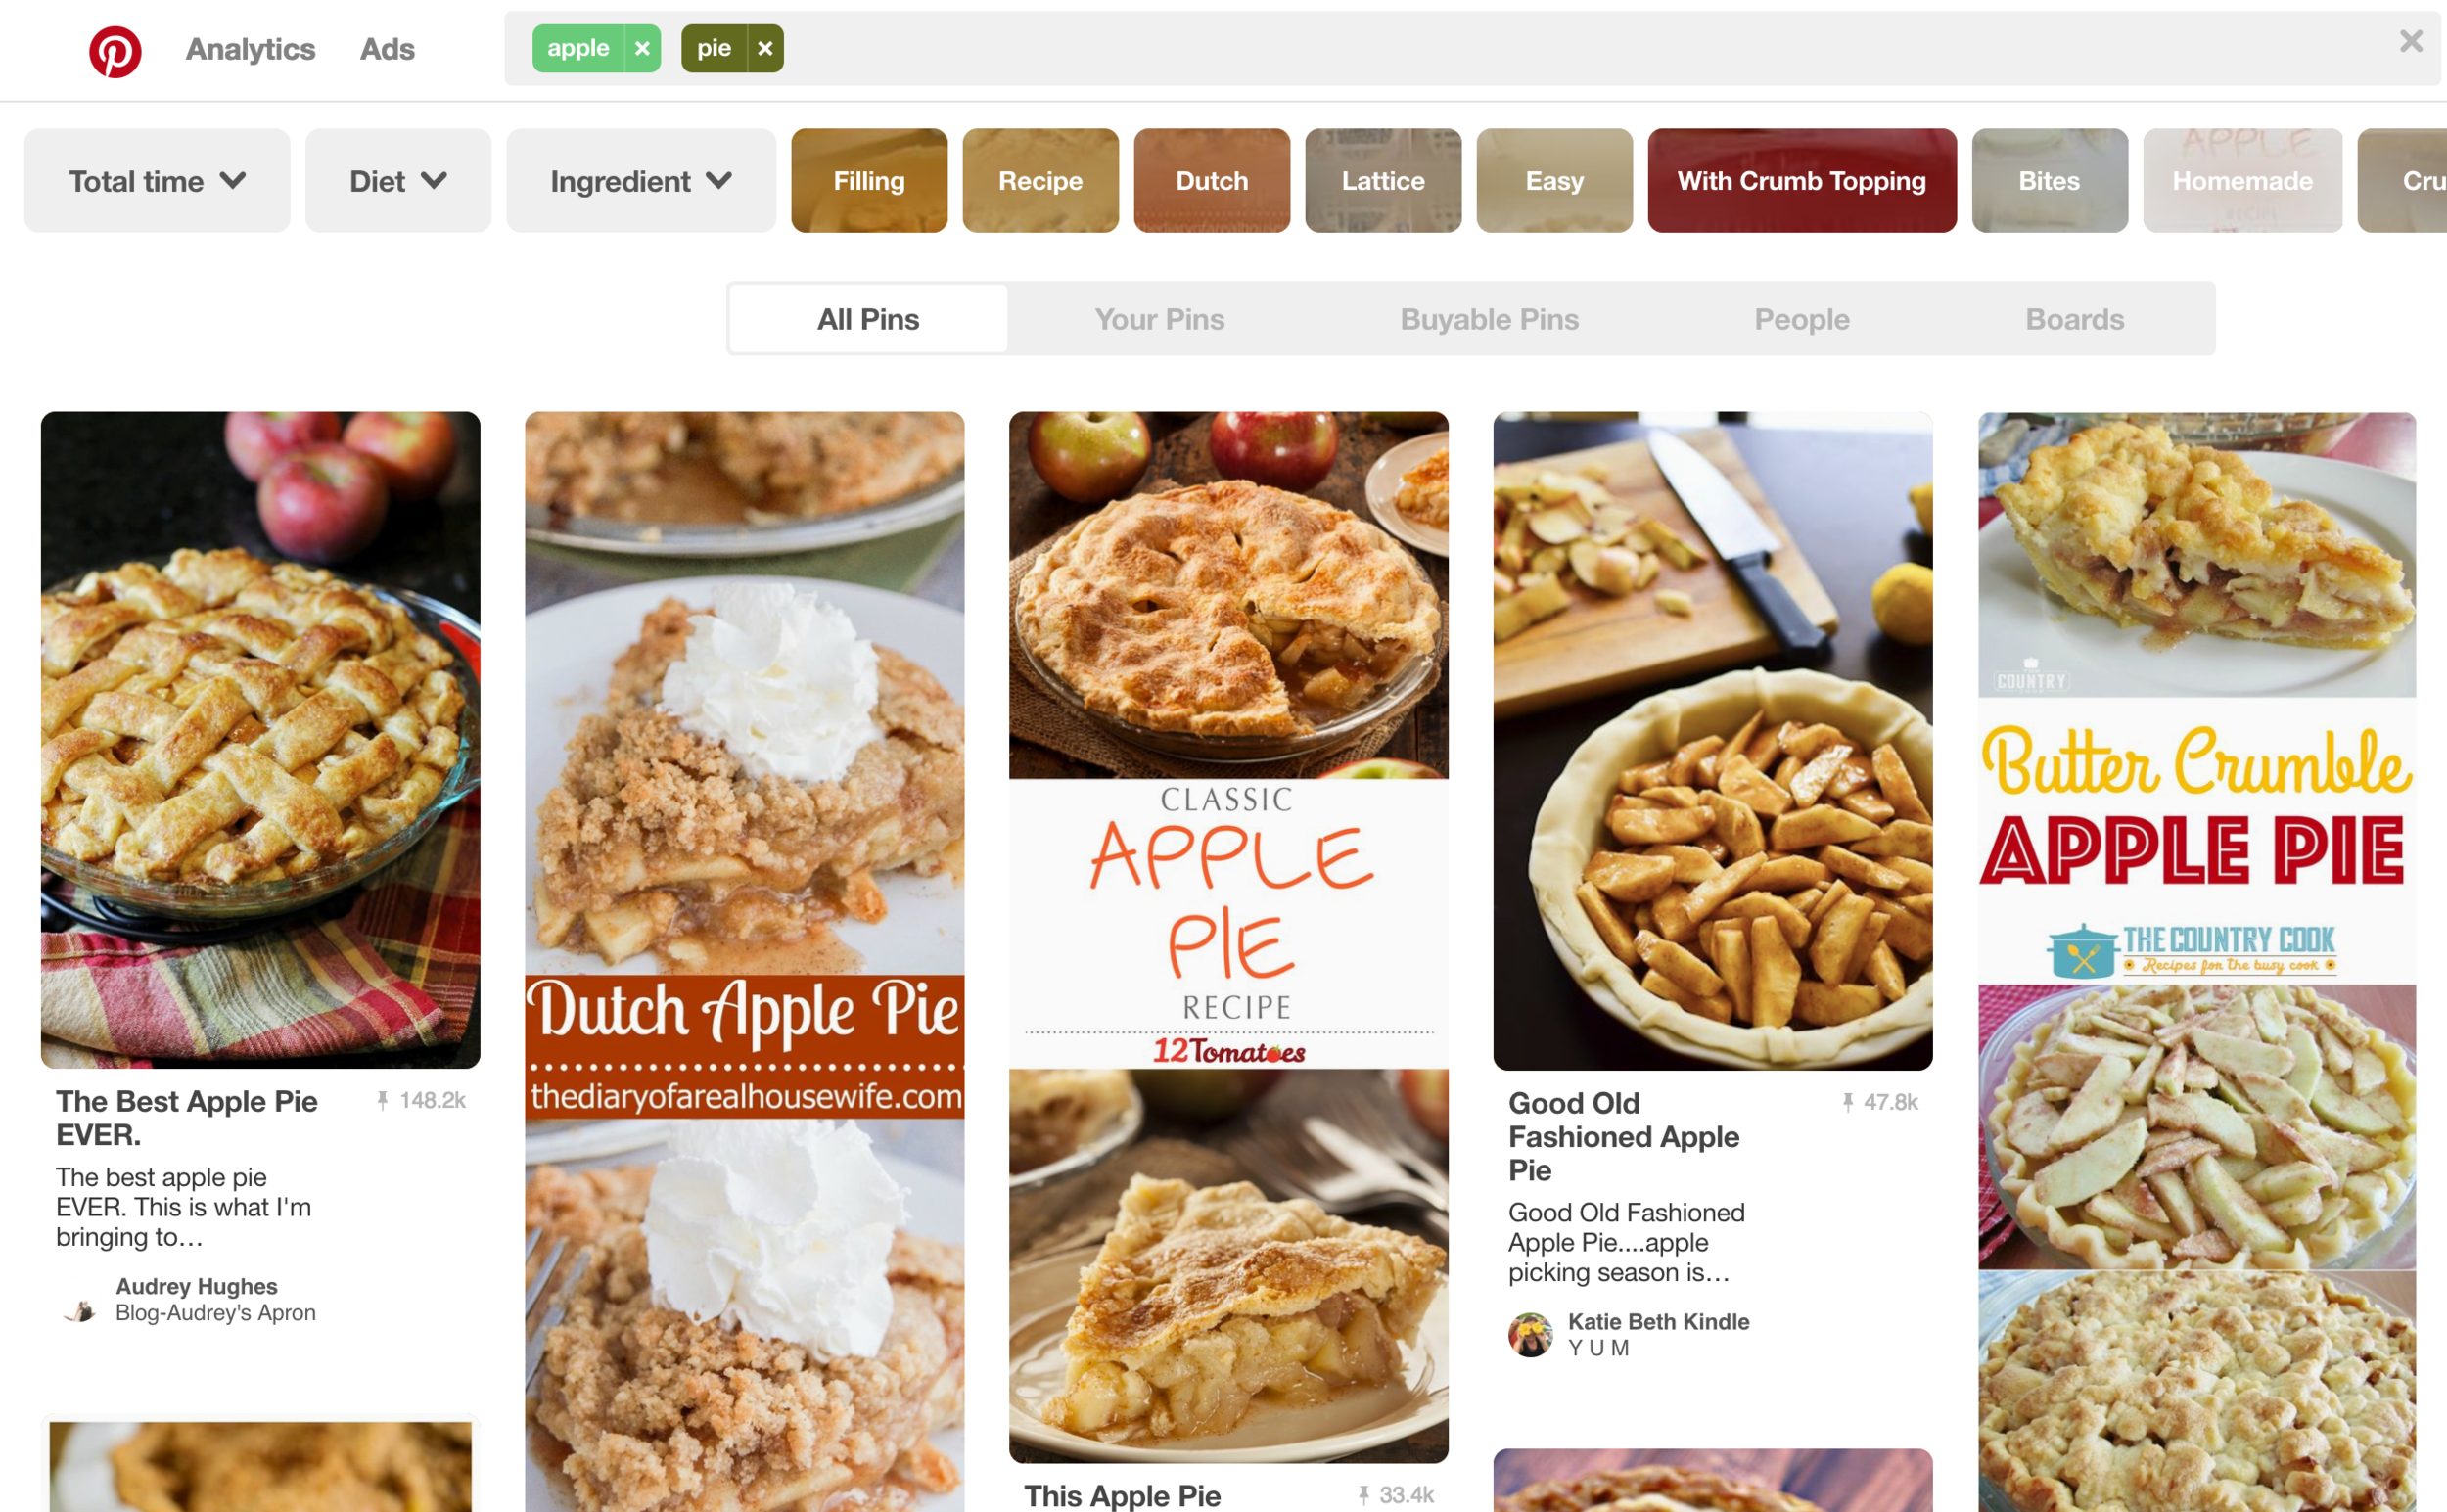 Apple Pie Recipes on Pinterest